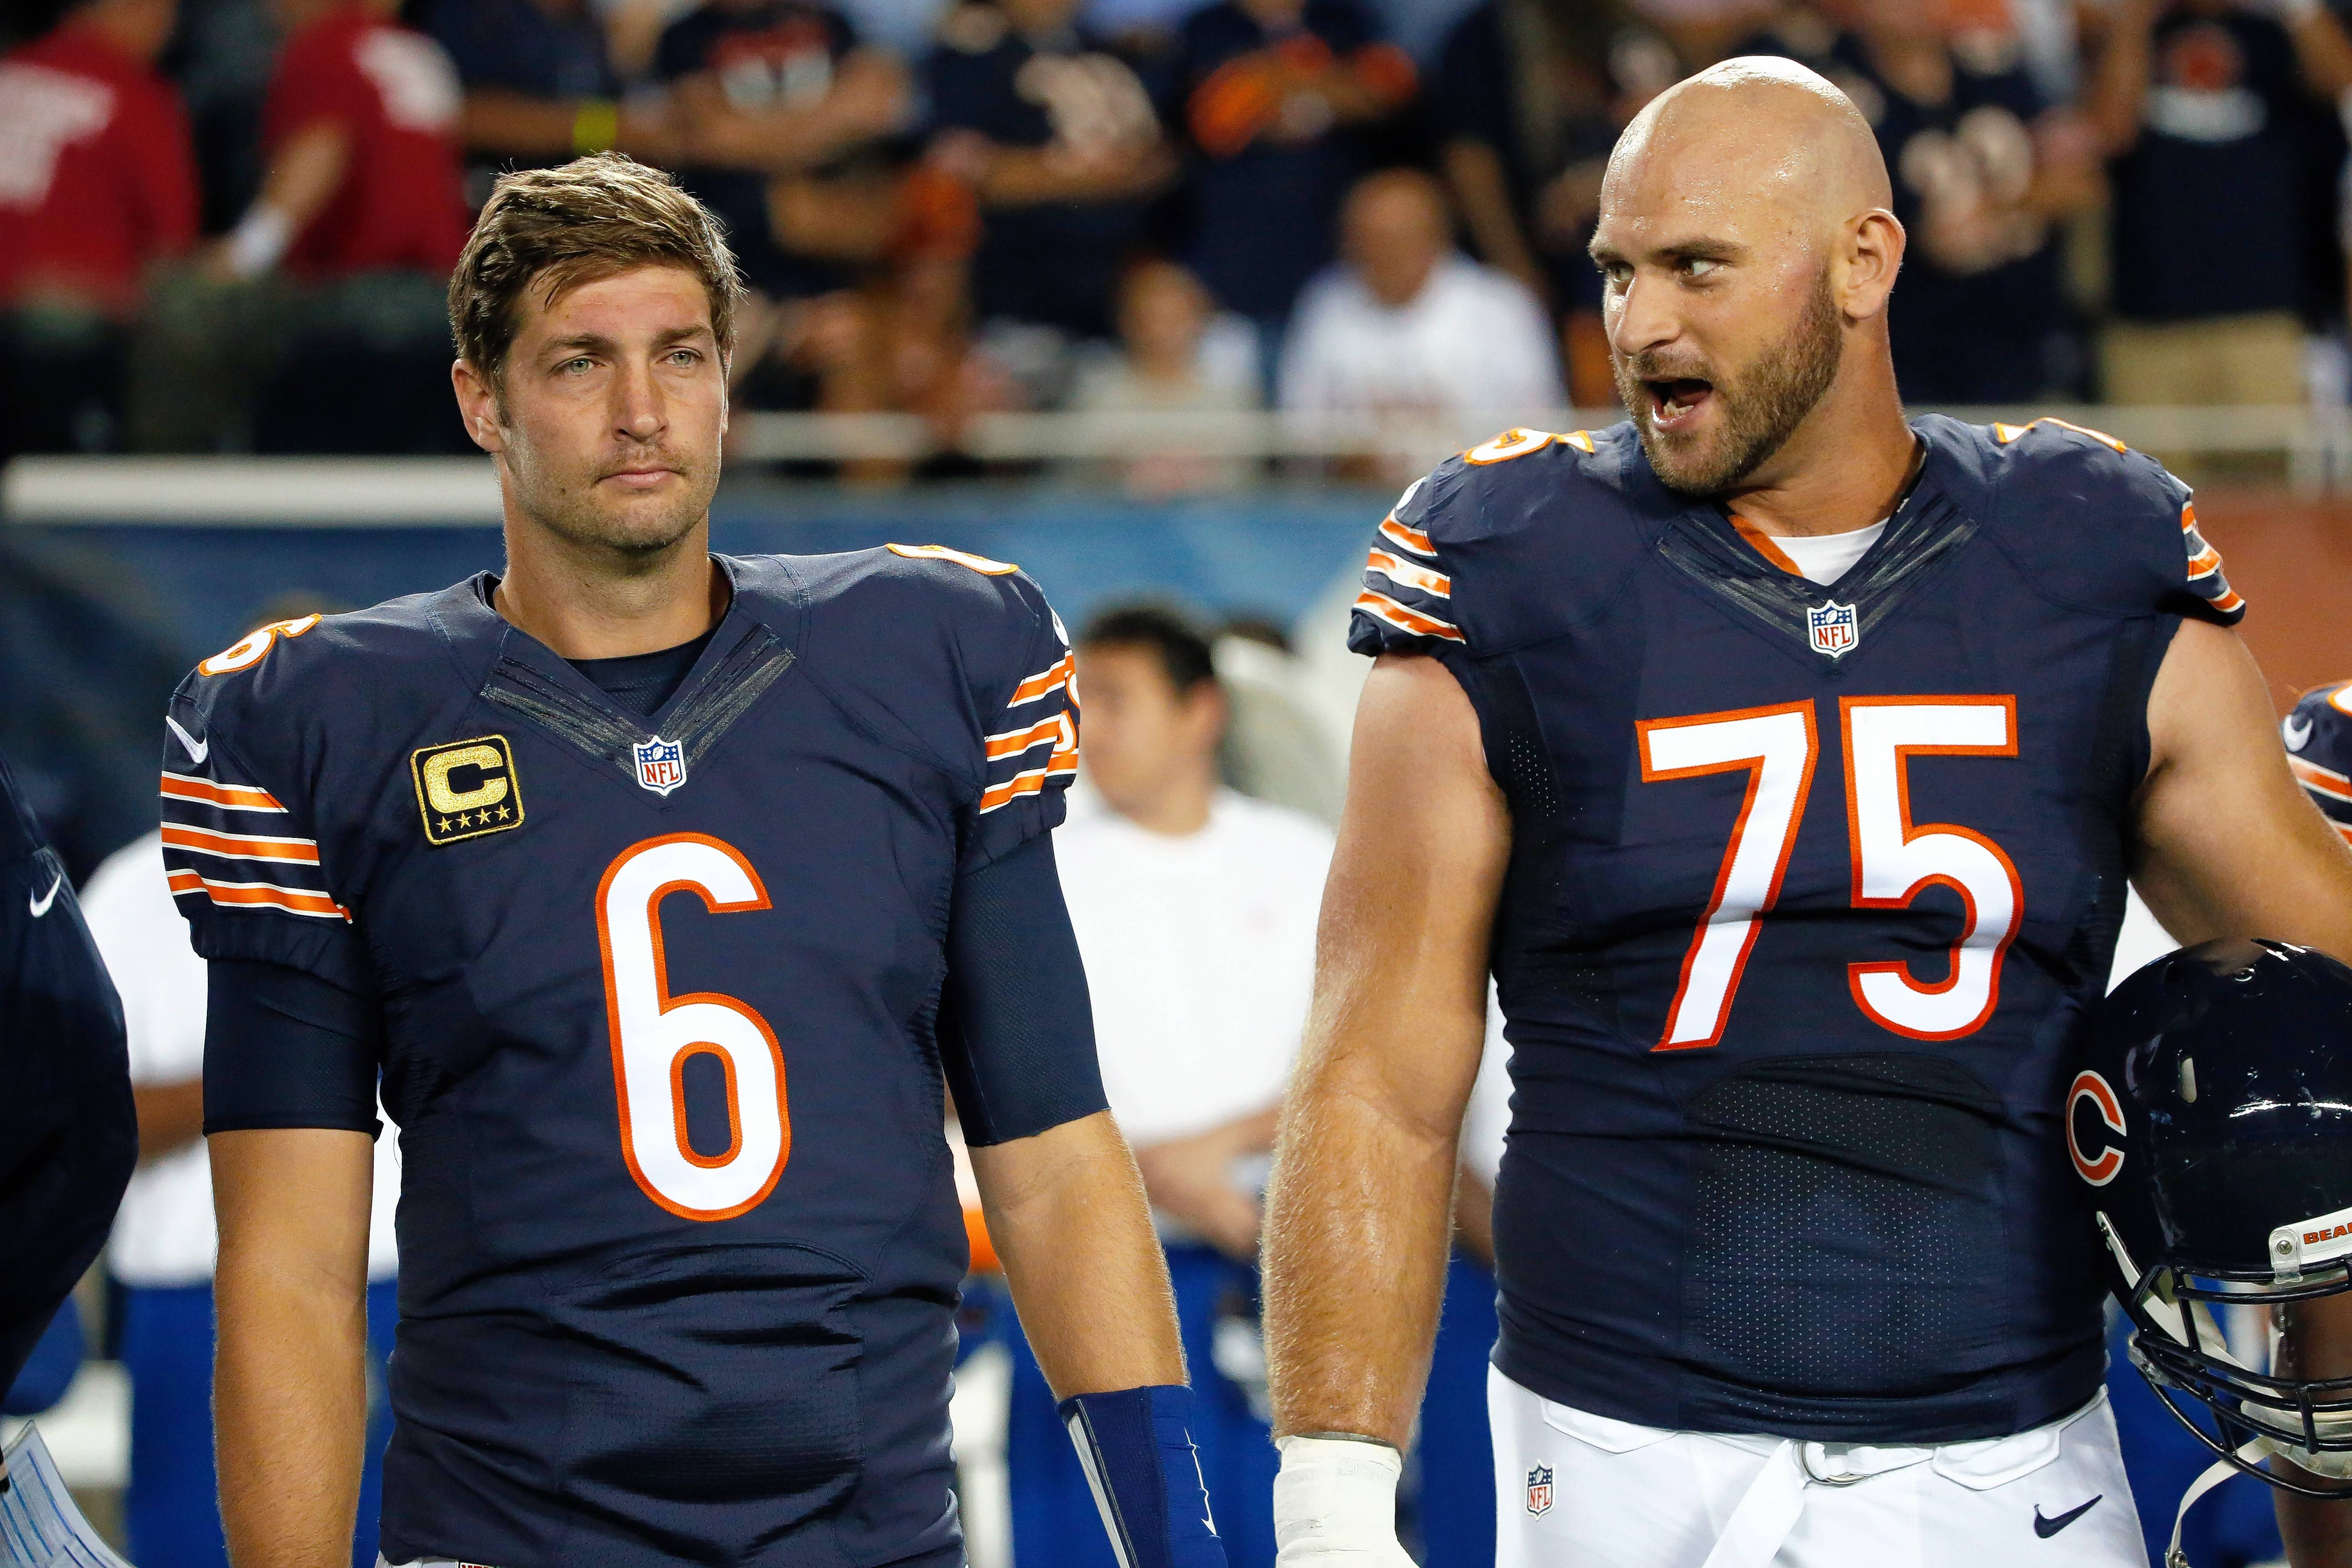 O-line hurting as Bears, Cutler face NFL's top defense